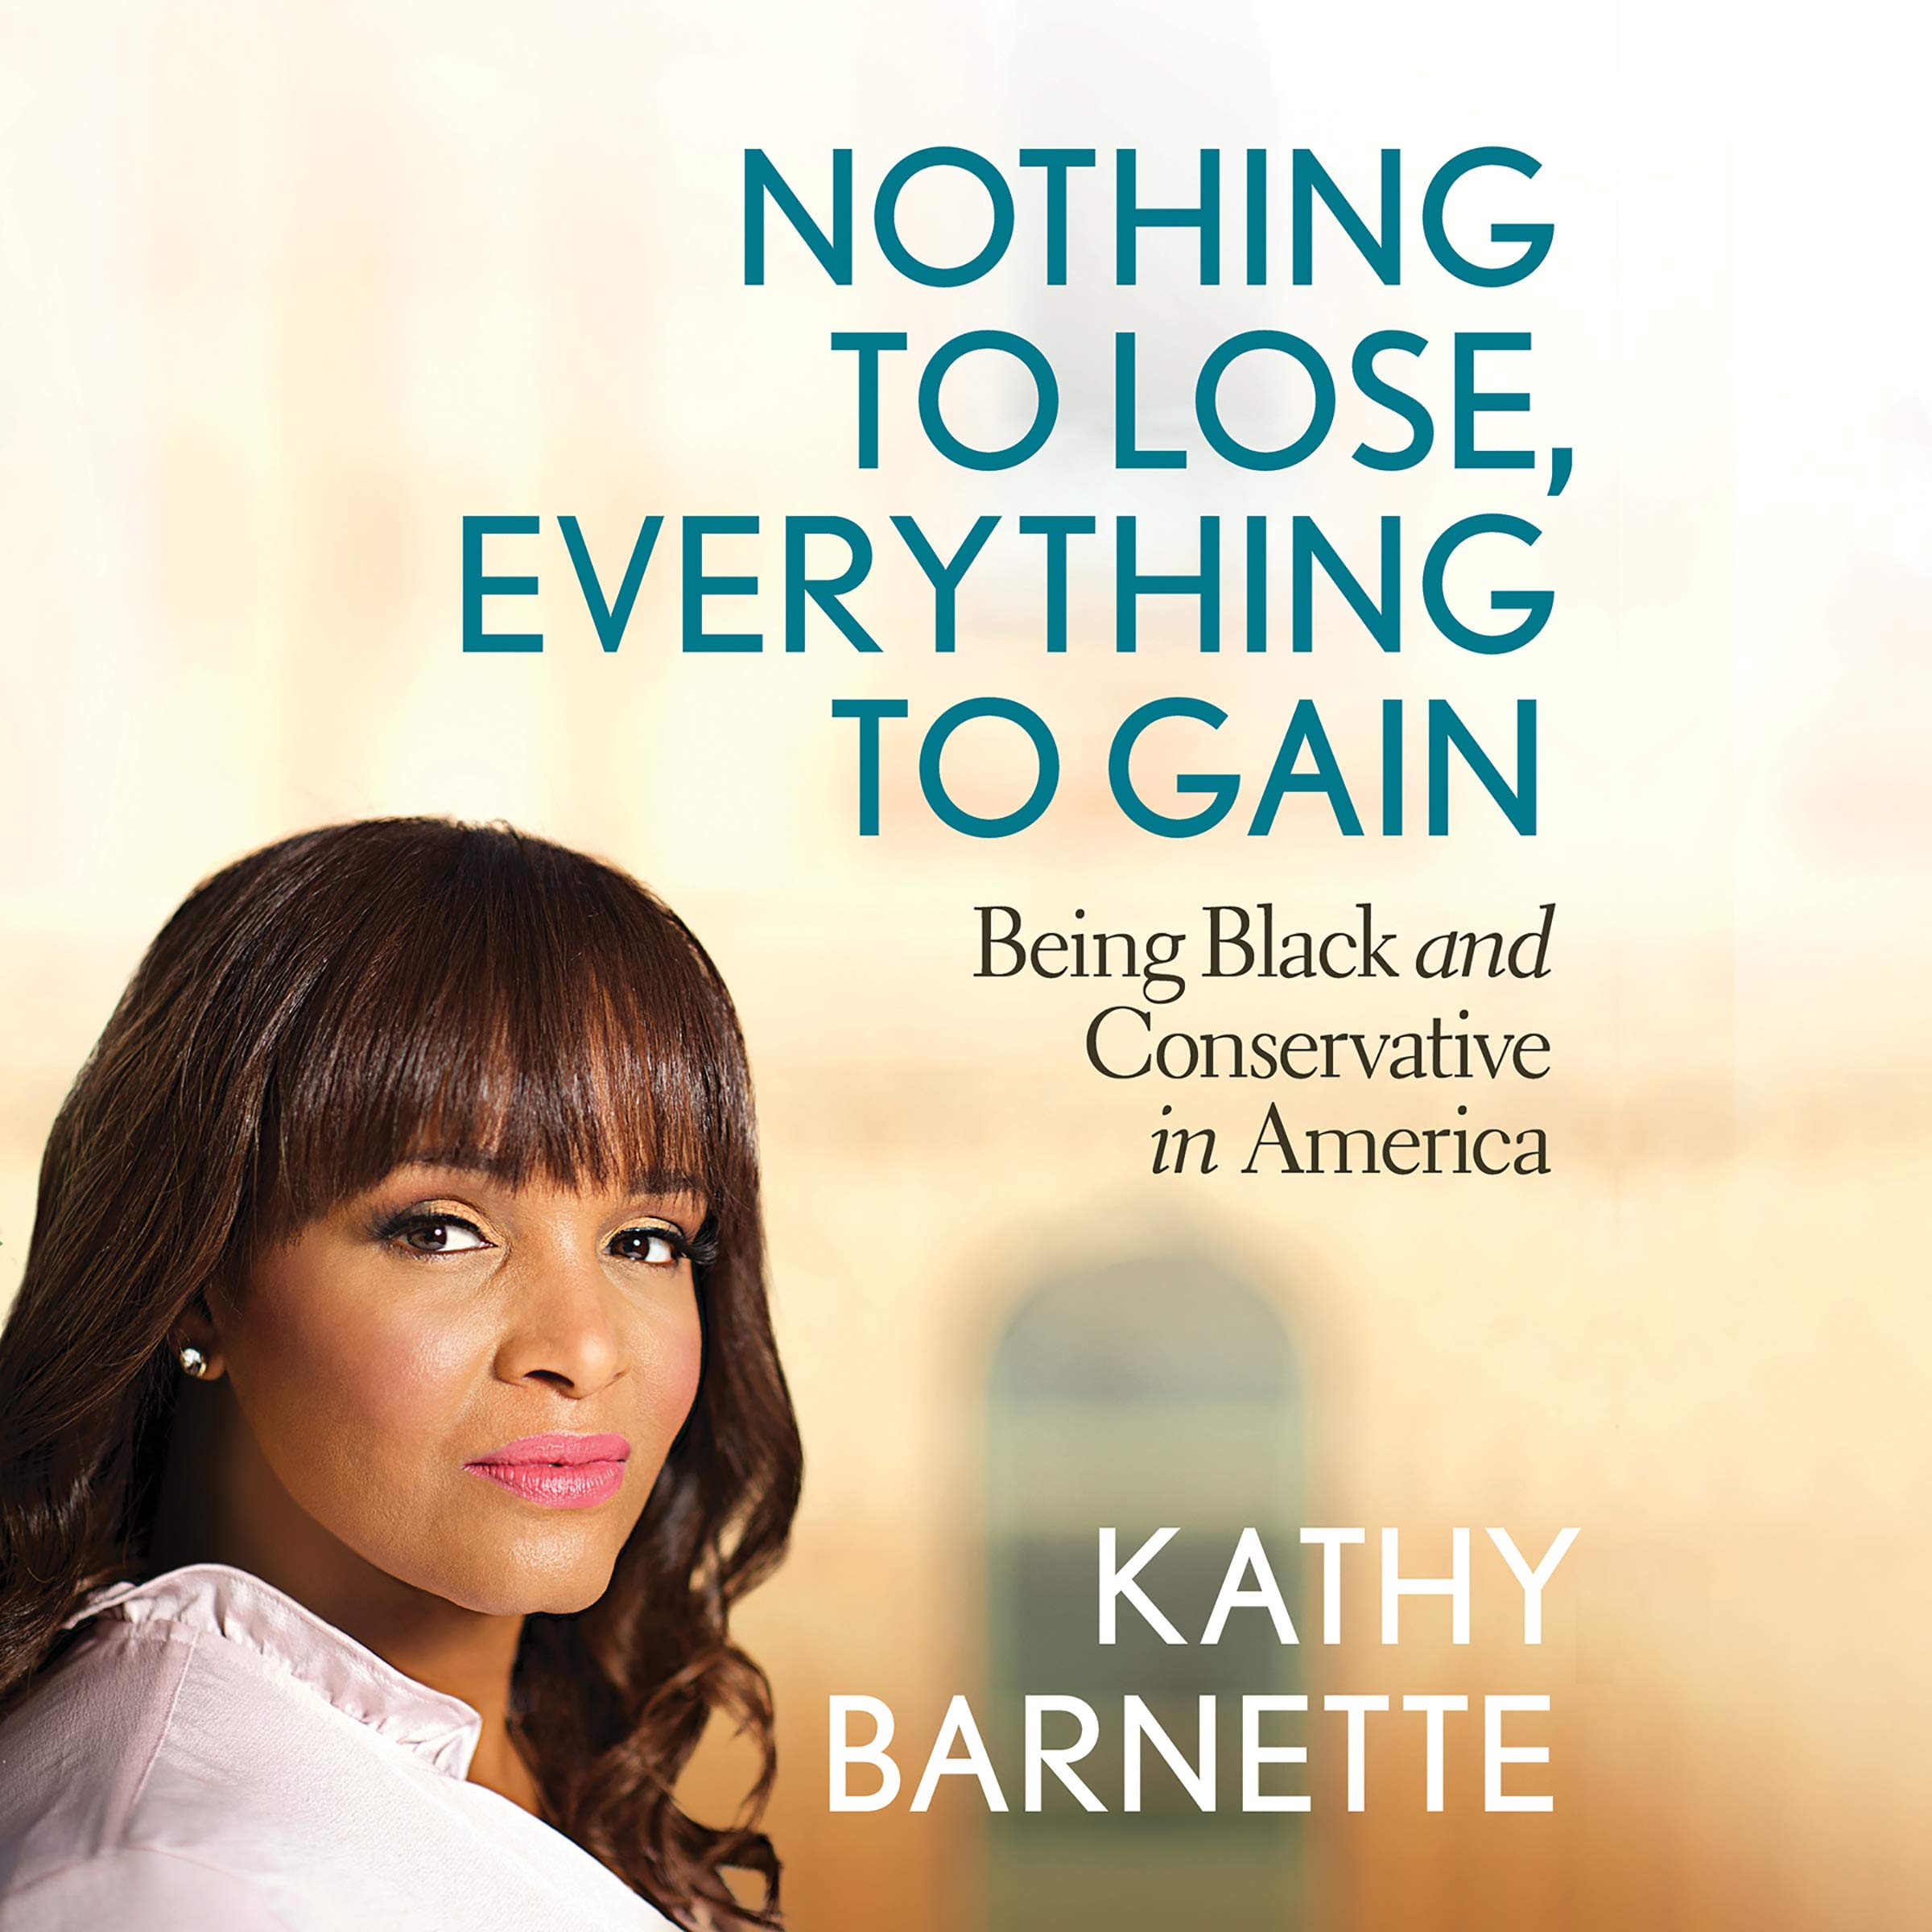 Photo of Book Review: Kathy Barnette's Nothing to Lose, Everything to Gain